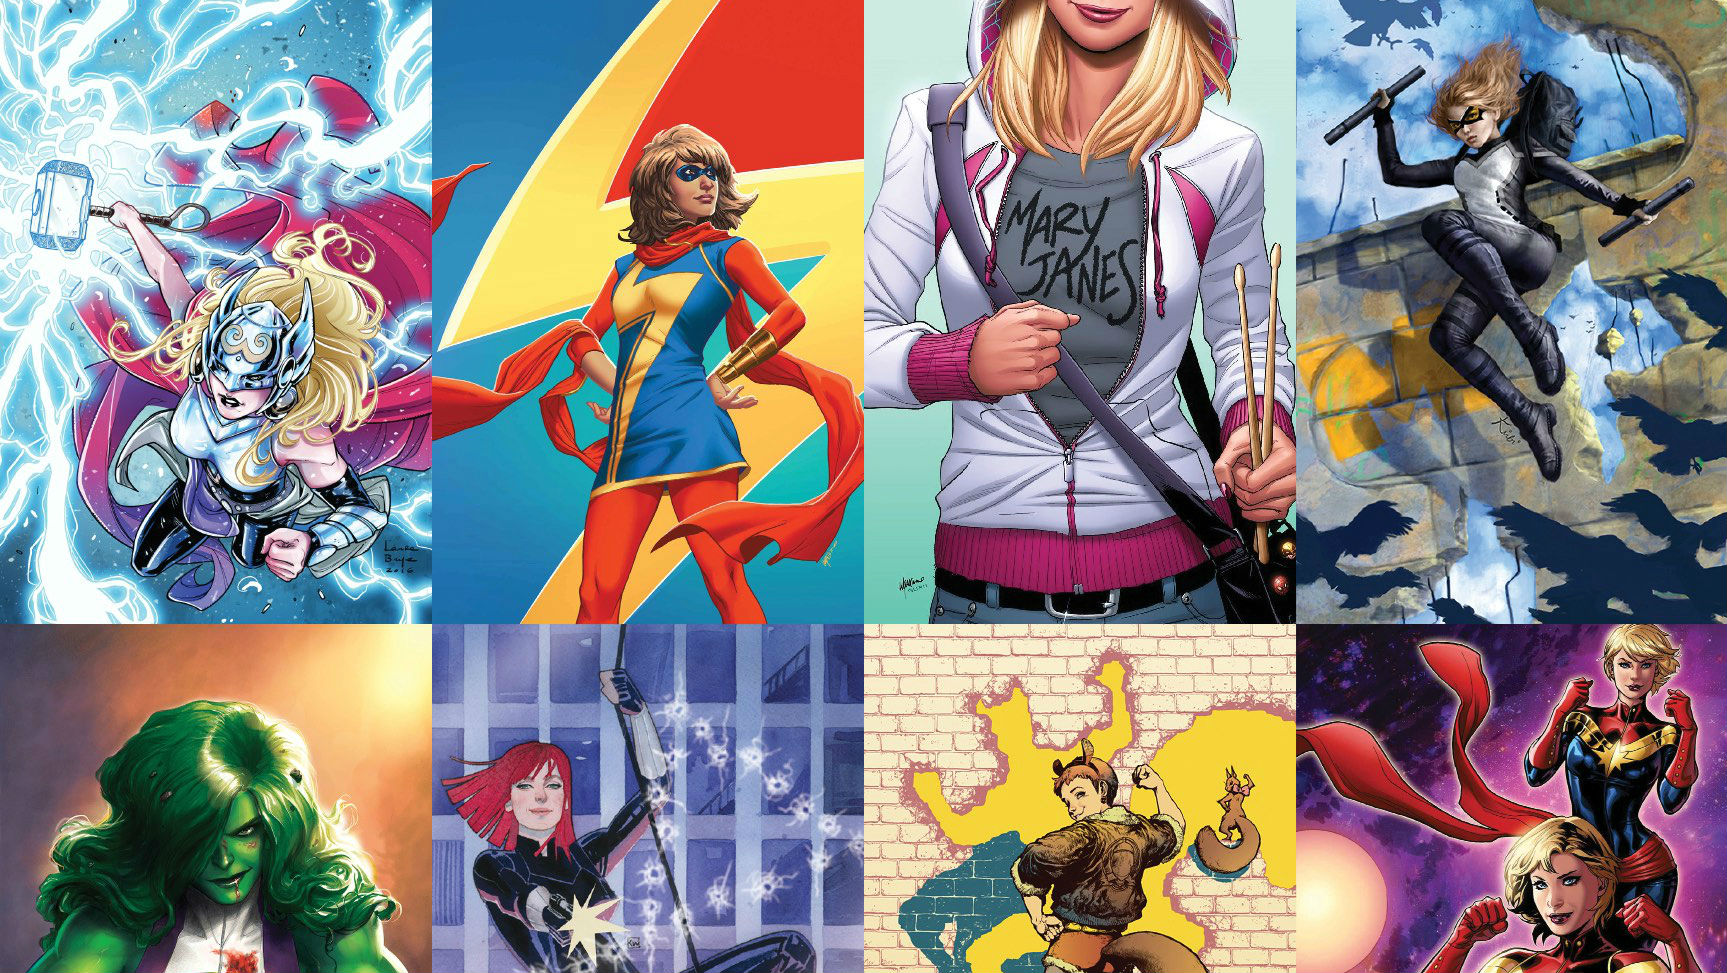 Marvel announces 'Women of Power' campaign this month screenshot